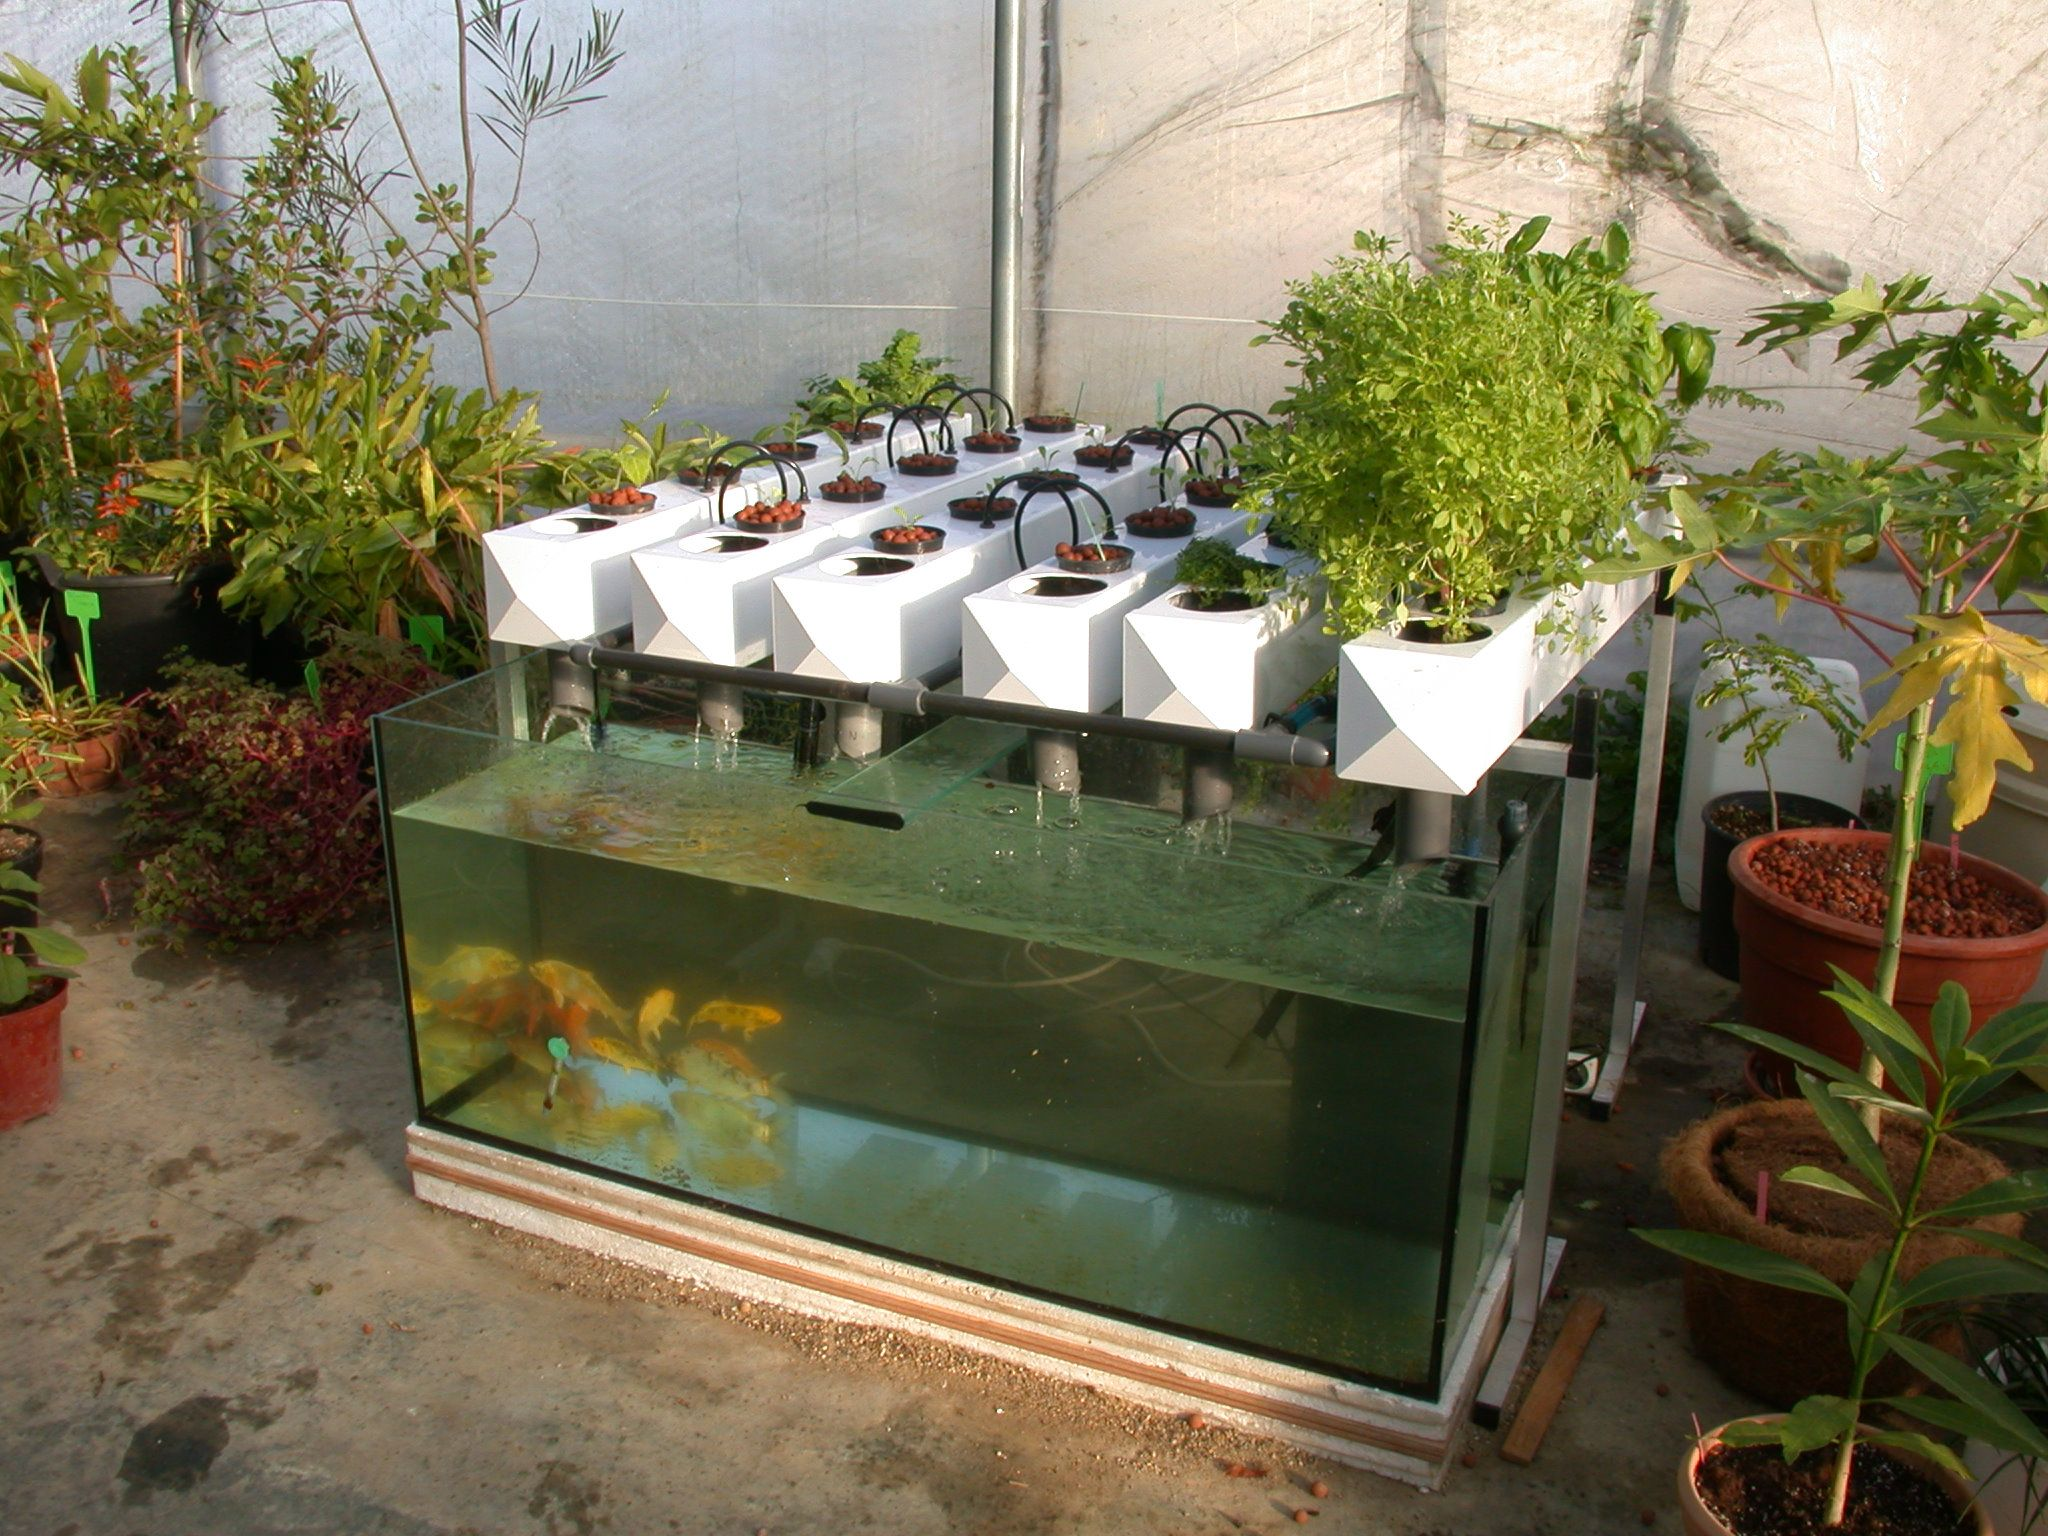 Aquaponics general hydroponics europe ghe official for Koi pond aquaponics